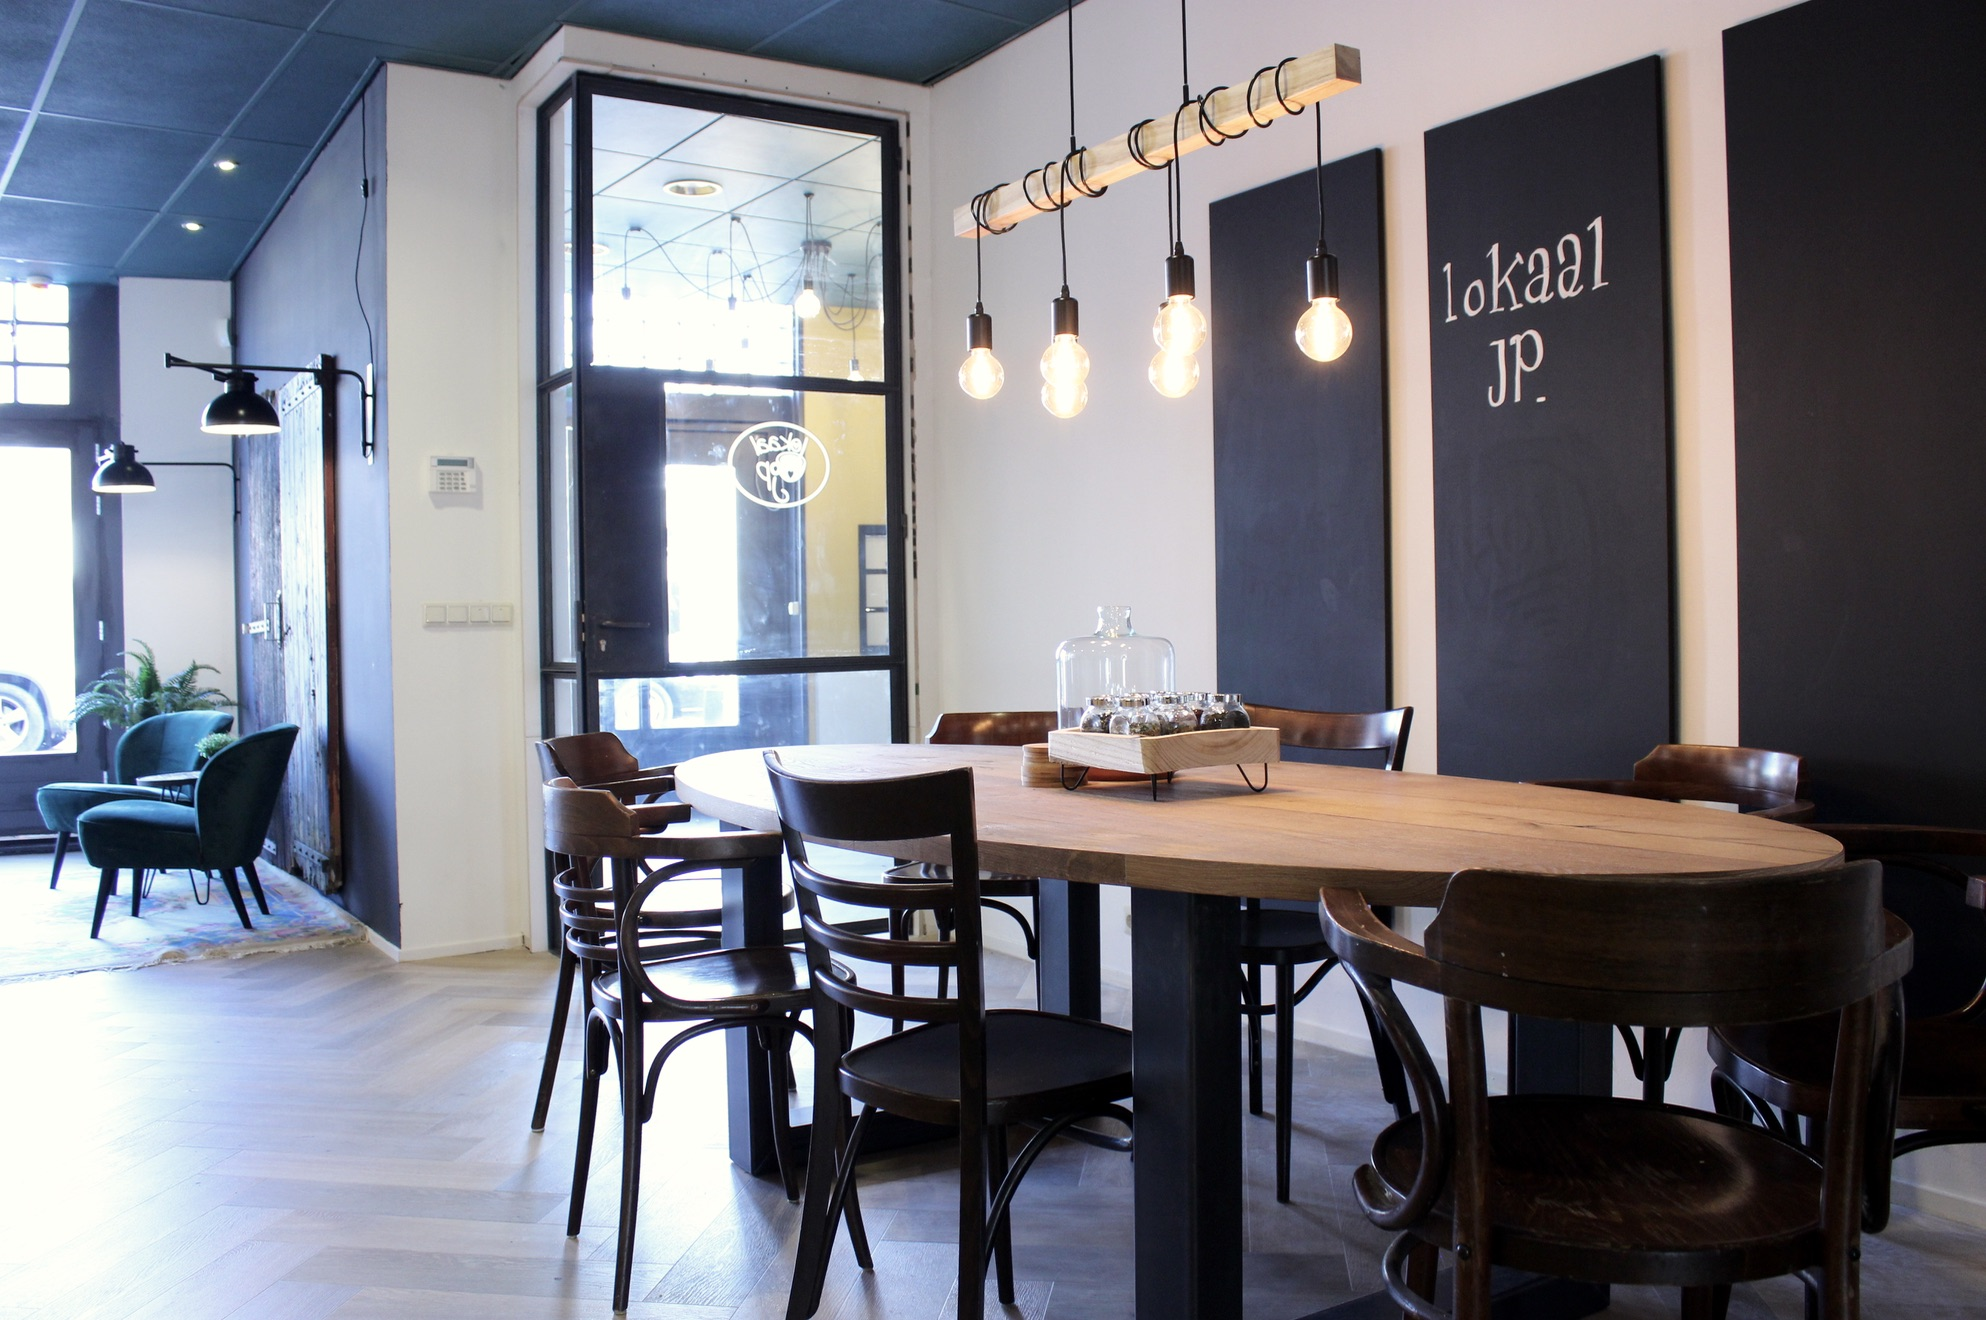 Totaalconcept lunchroom LOKAAL JP - Sneek